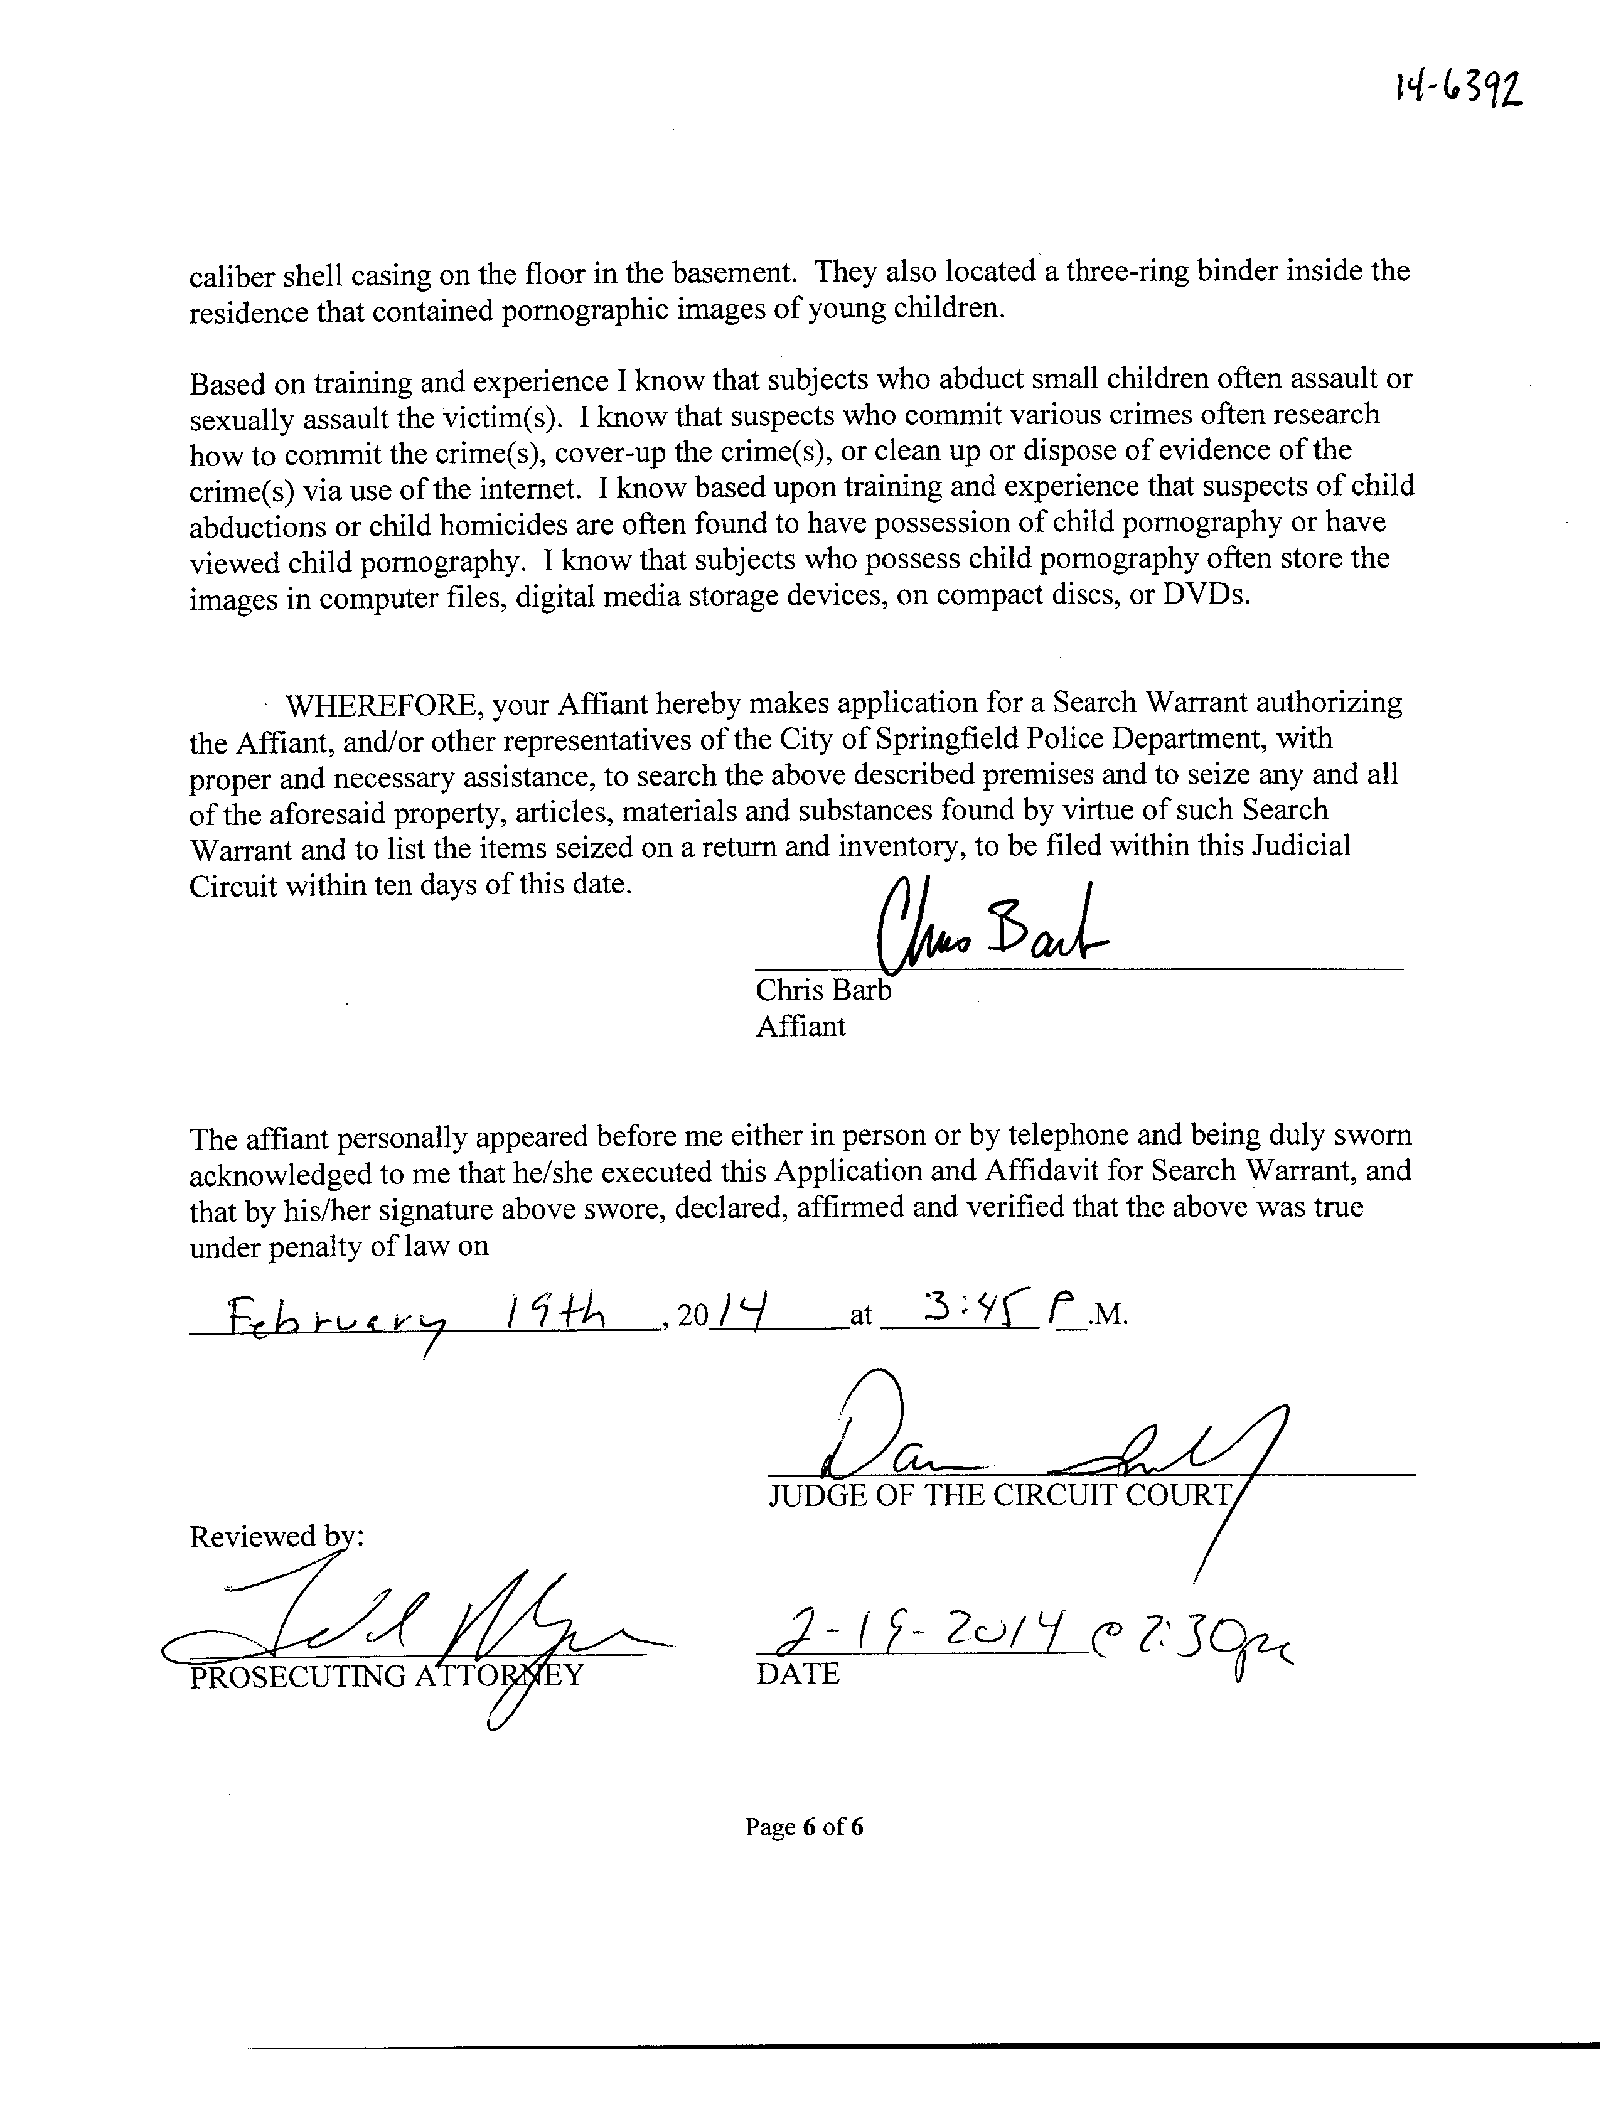 Copy of Search Warrant Return13.png